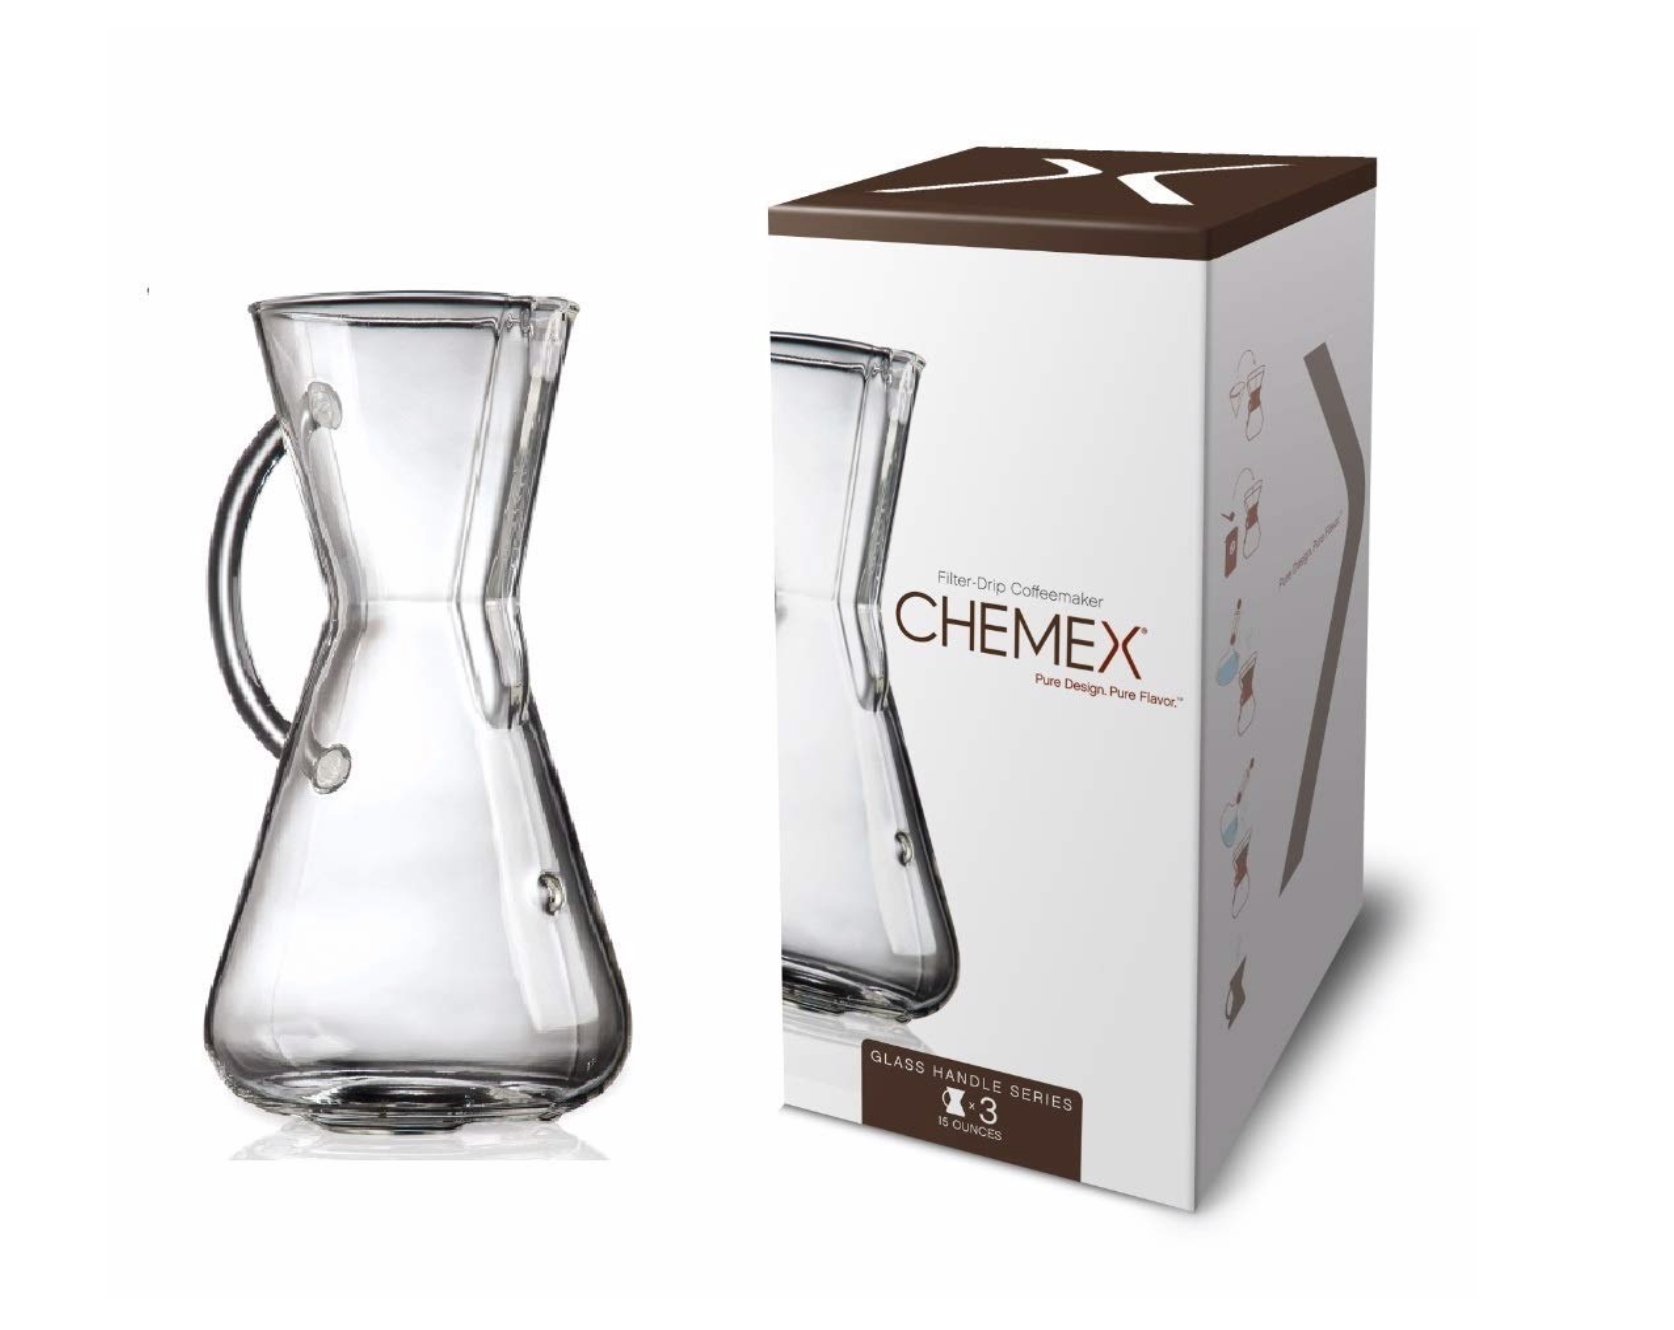 Chemex Coffee Maker - I have yet to try this, but I am highly considering it. I have only heard rave reviews.